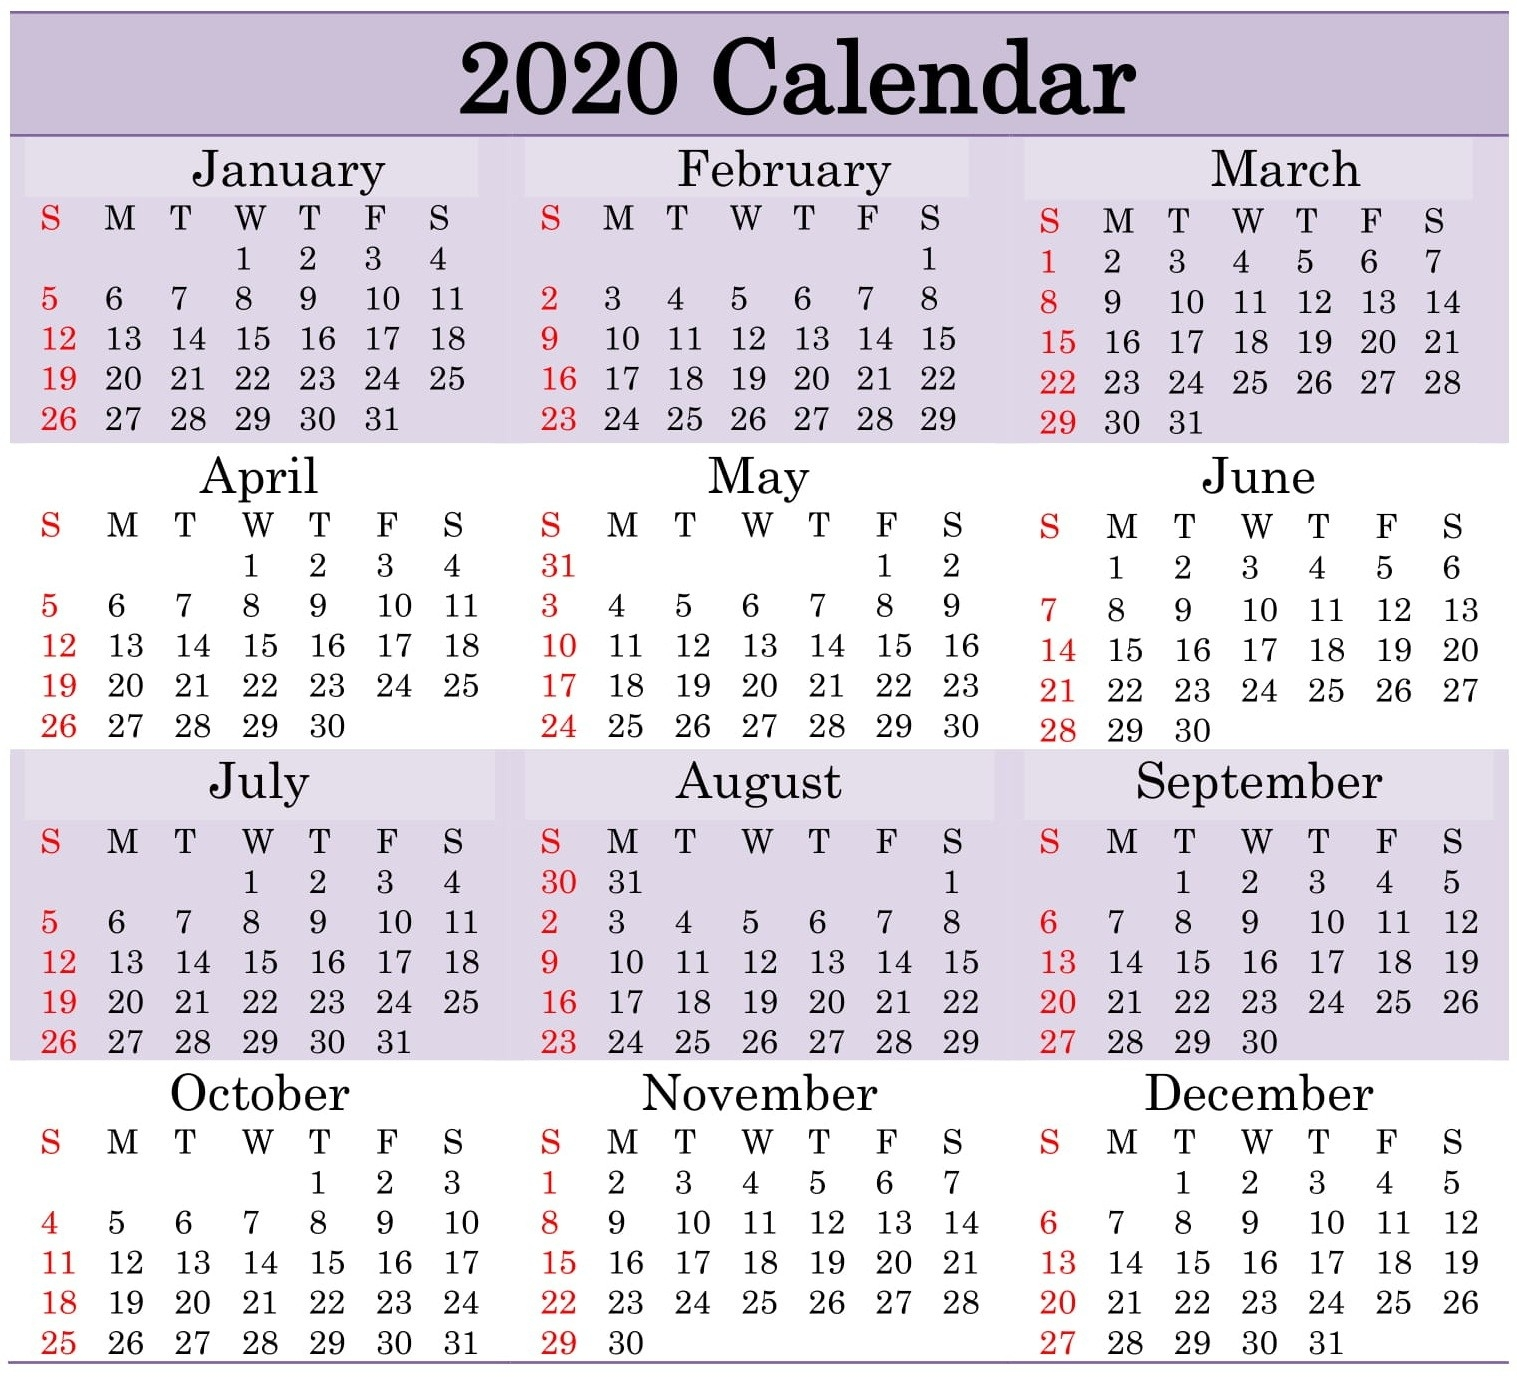 Printable 2020 Calendar Word Document - Latest Printable  Julian Date Calendar 2020